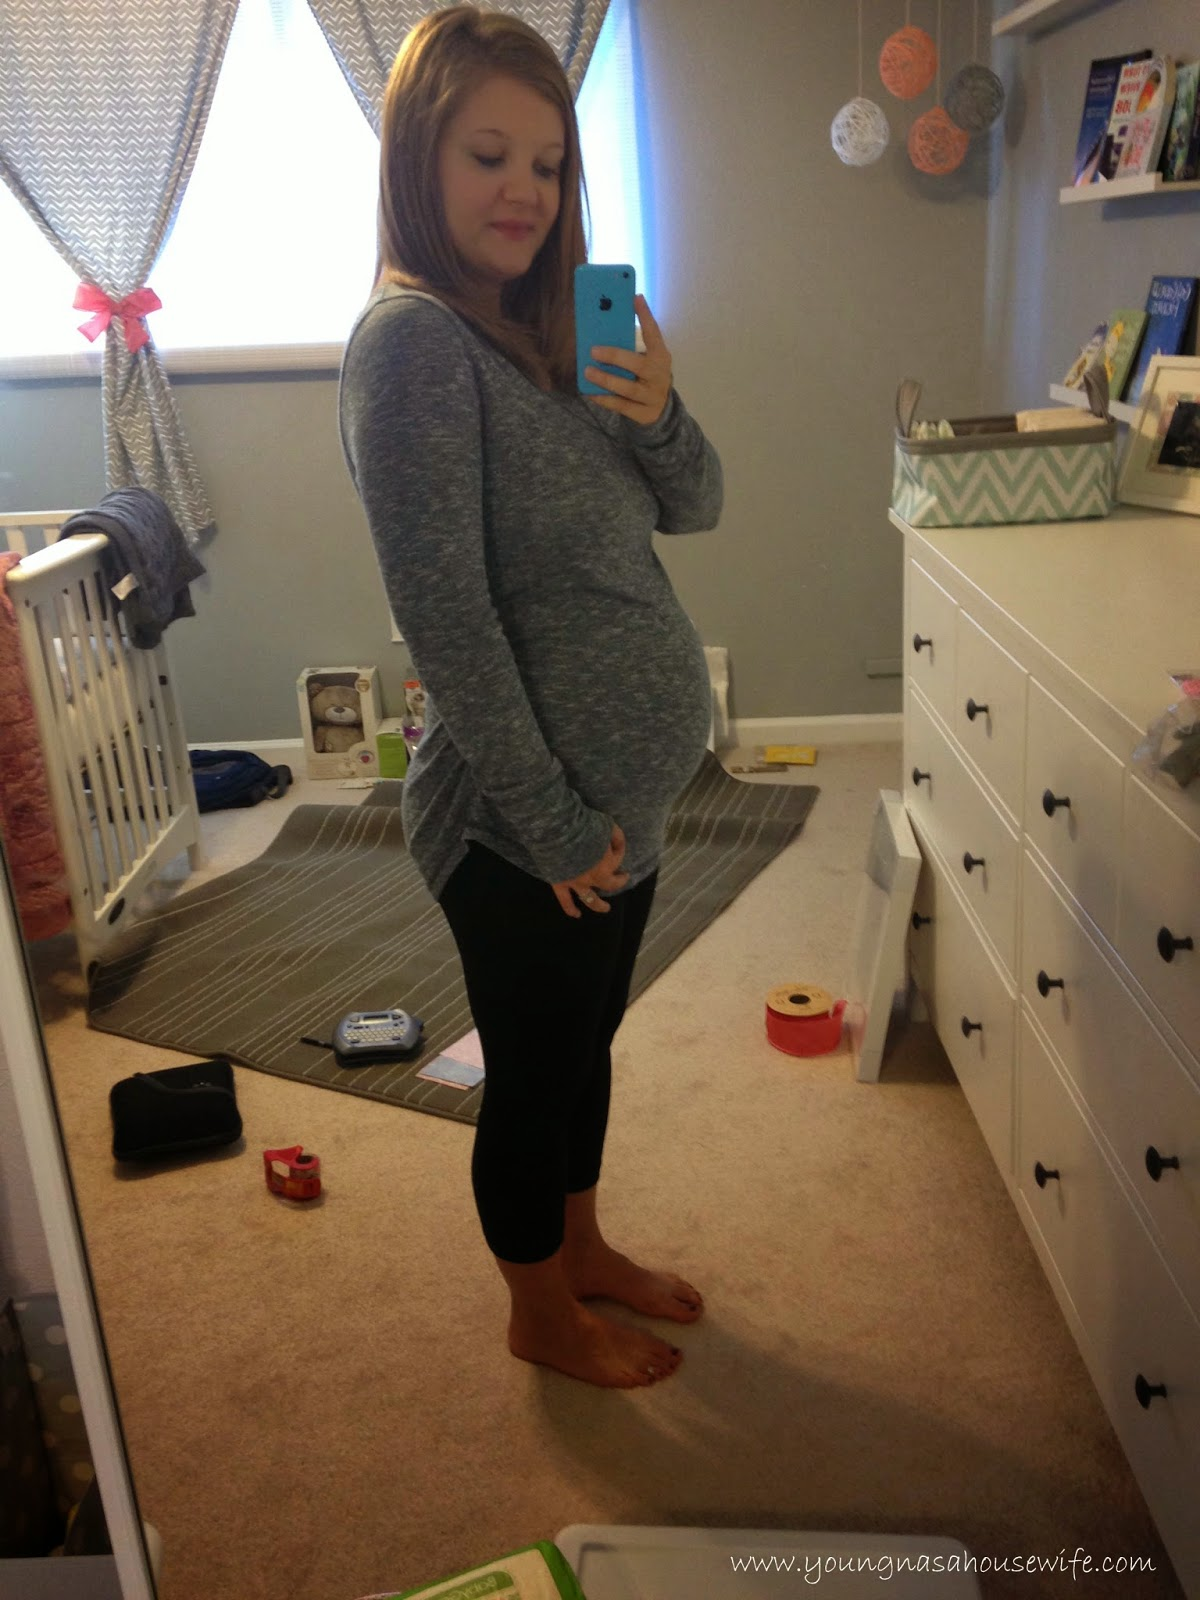 23 weeks pregnant update - 3 2